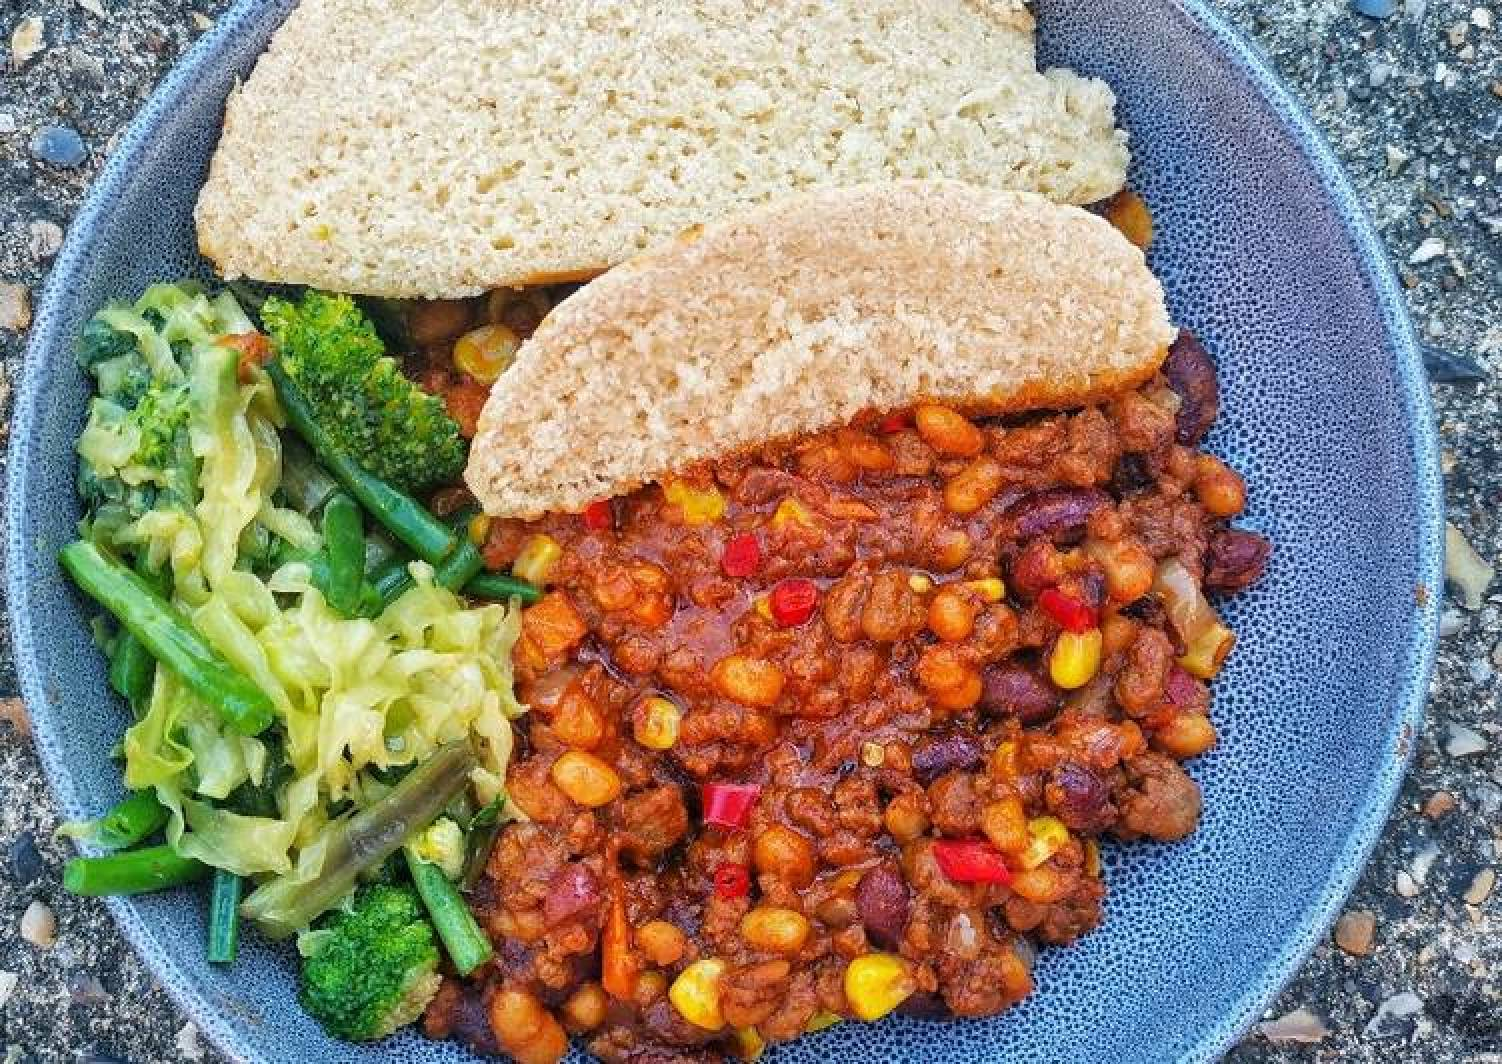 Steamed bread with quorn and veggie